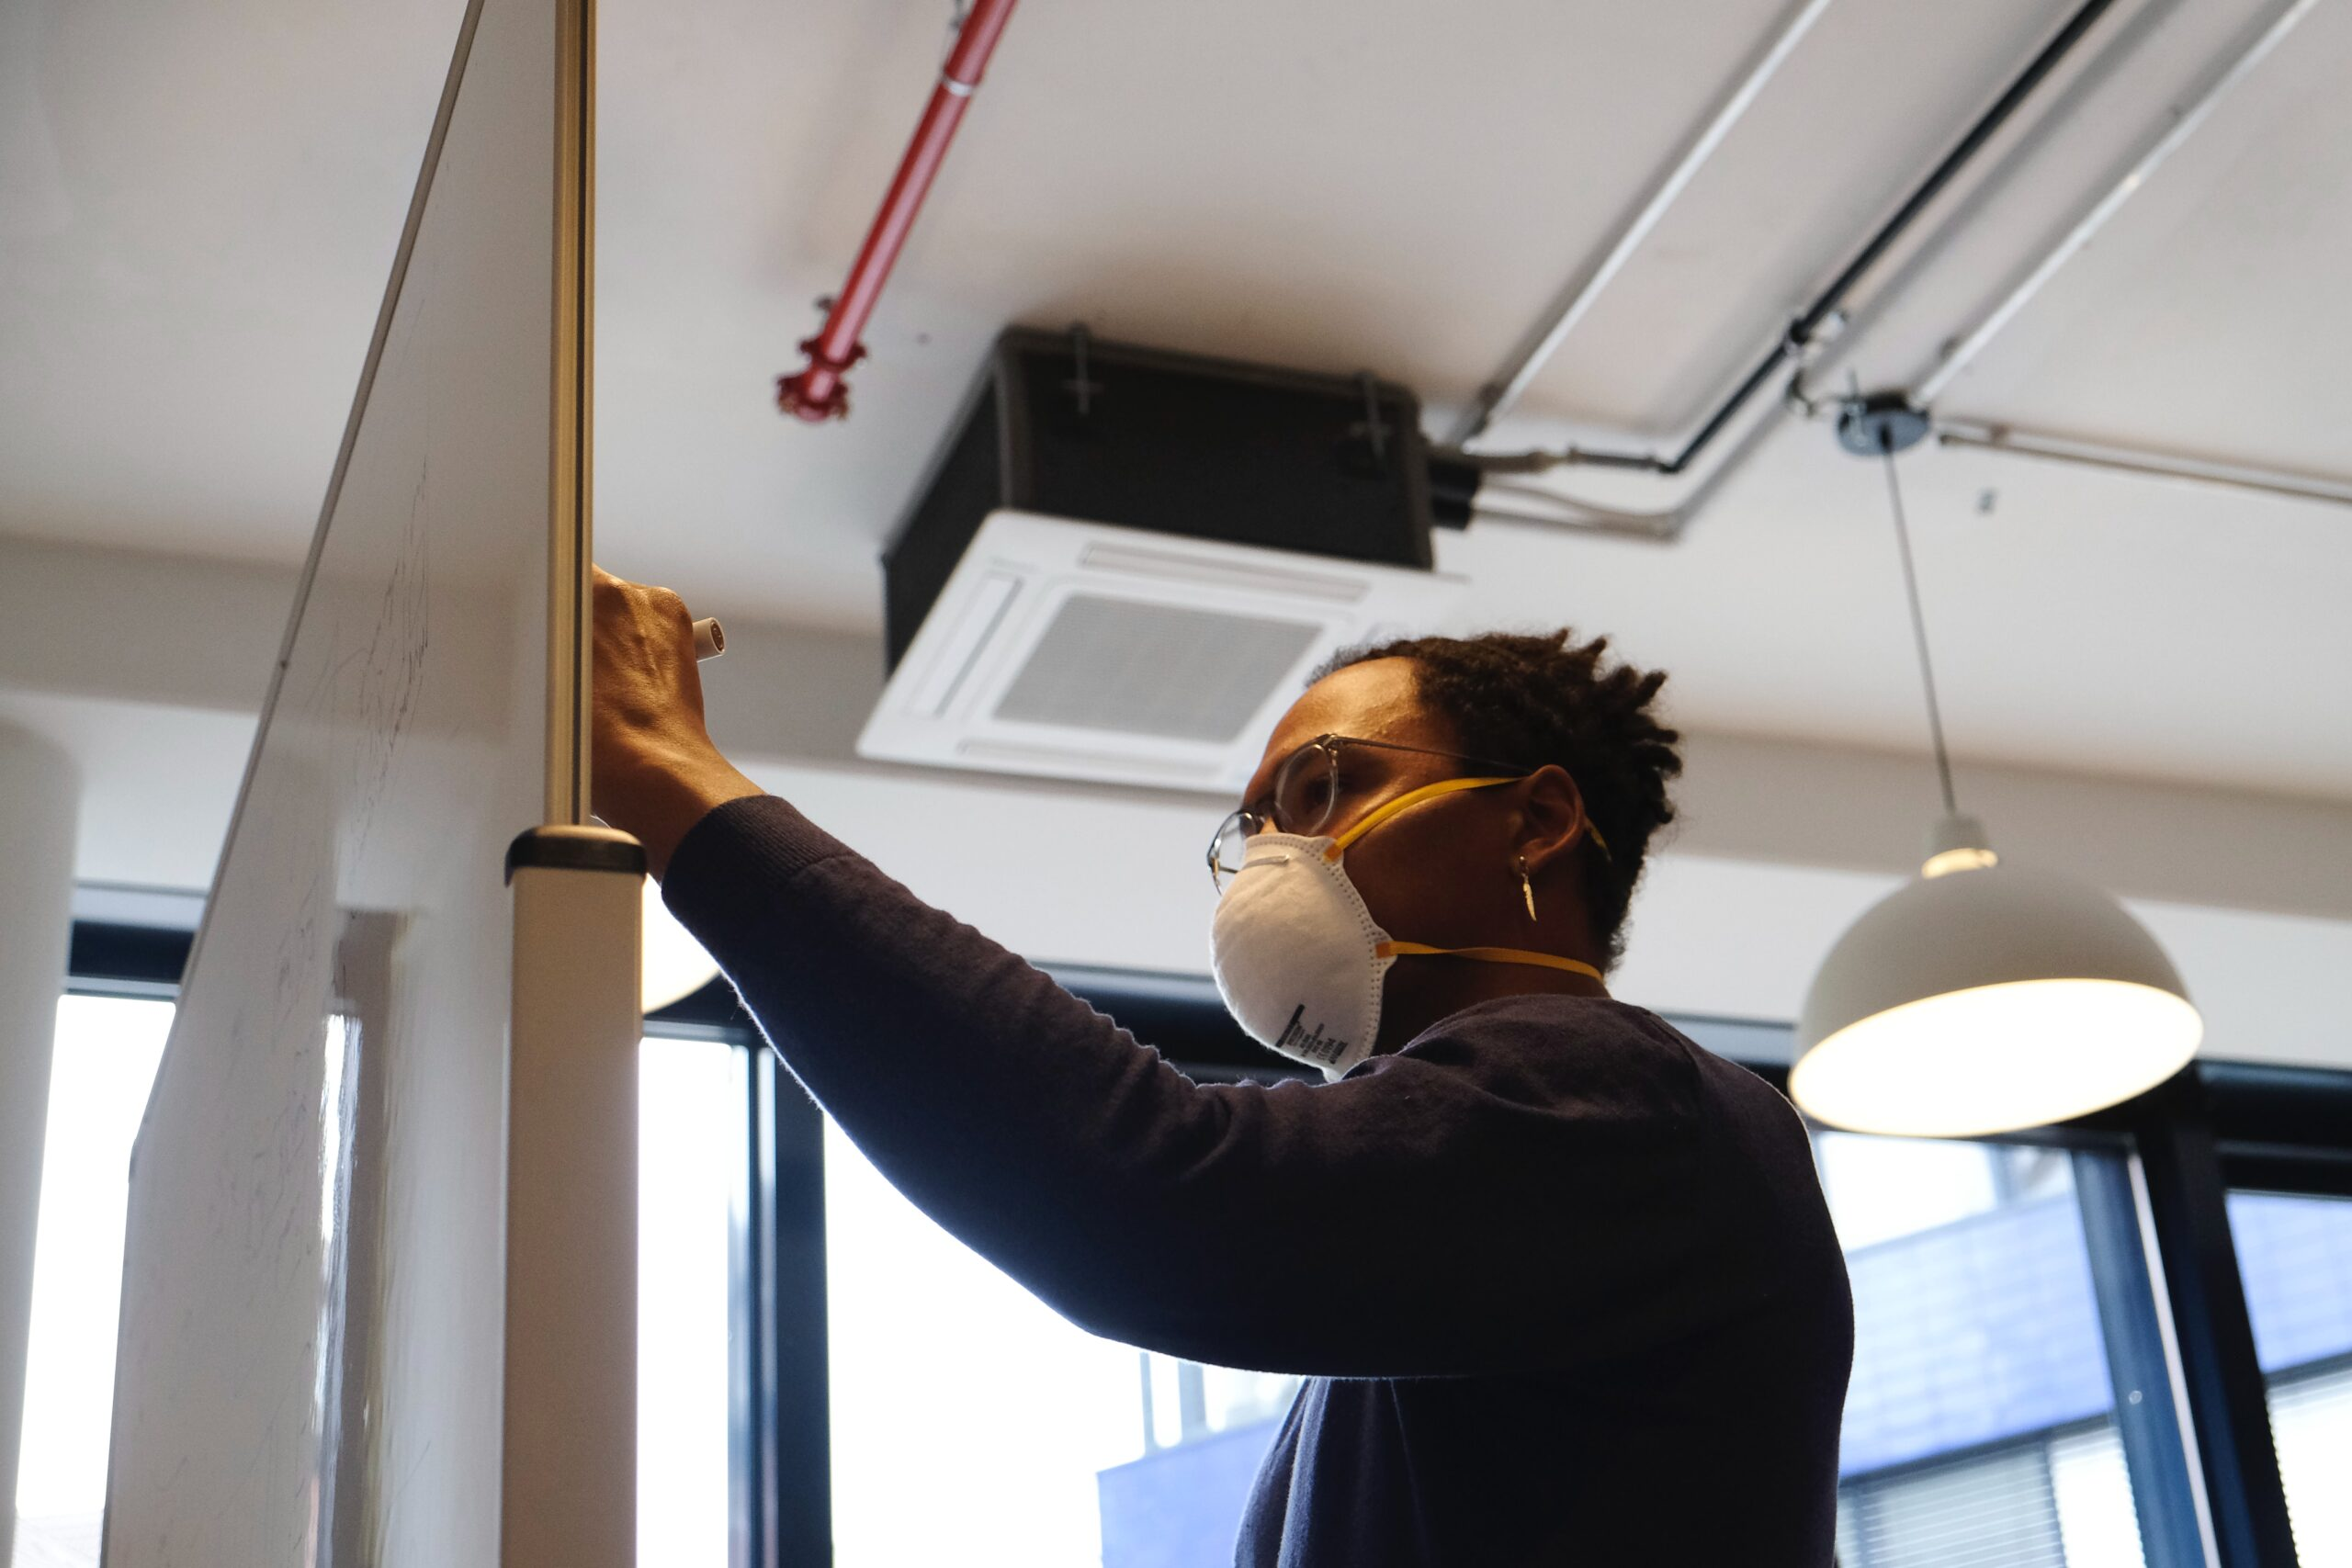 Product manager drafting ideas on a white board while wearing a mask in the office